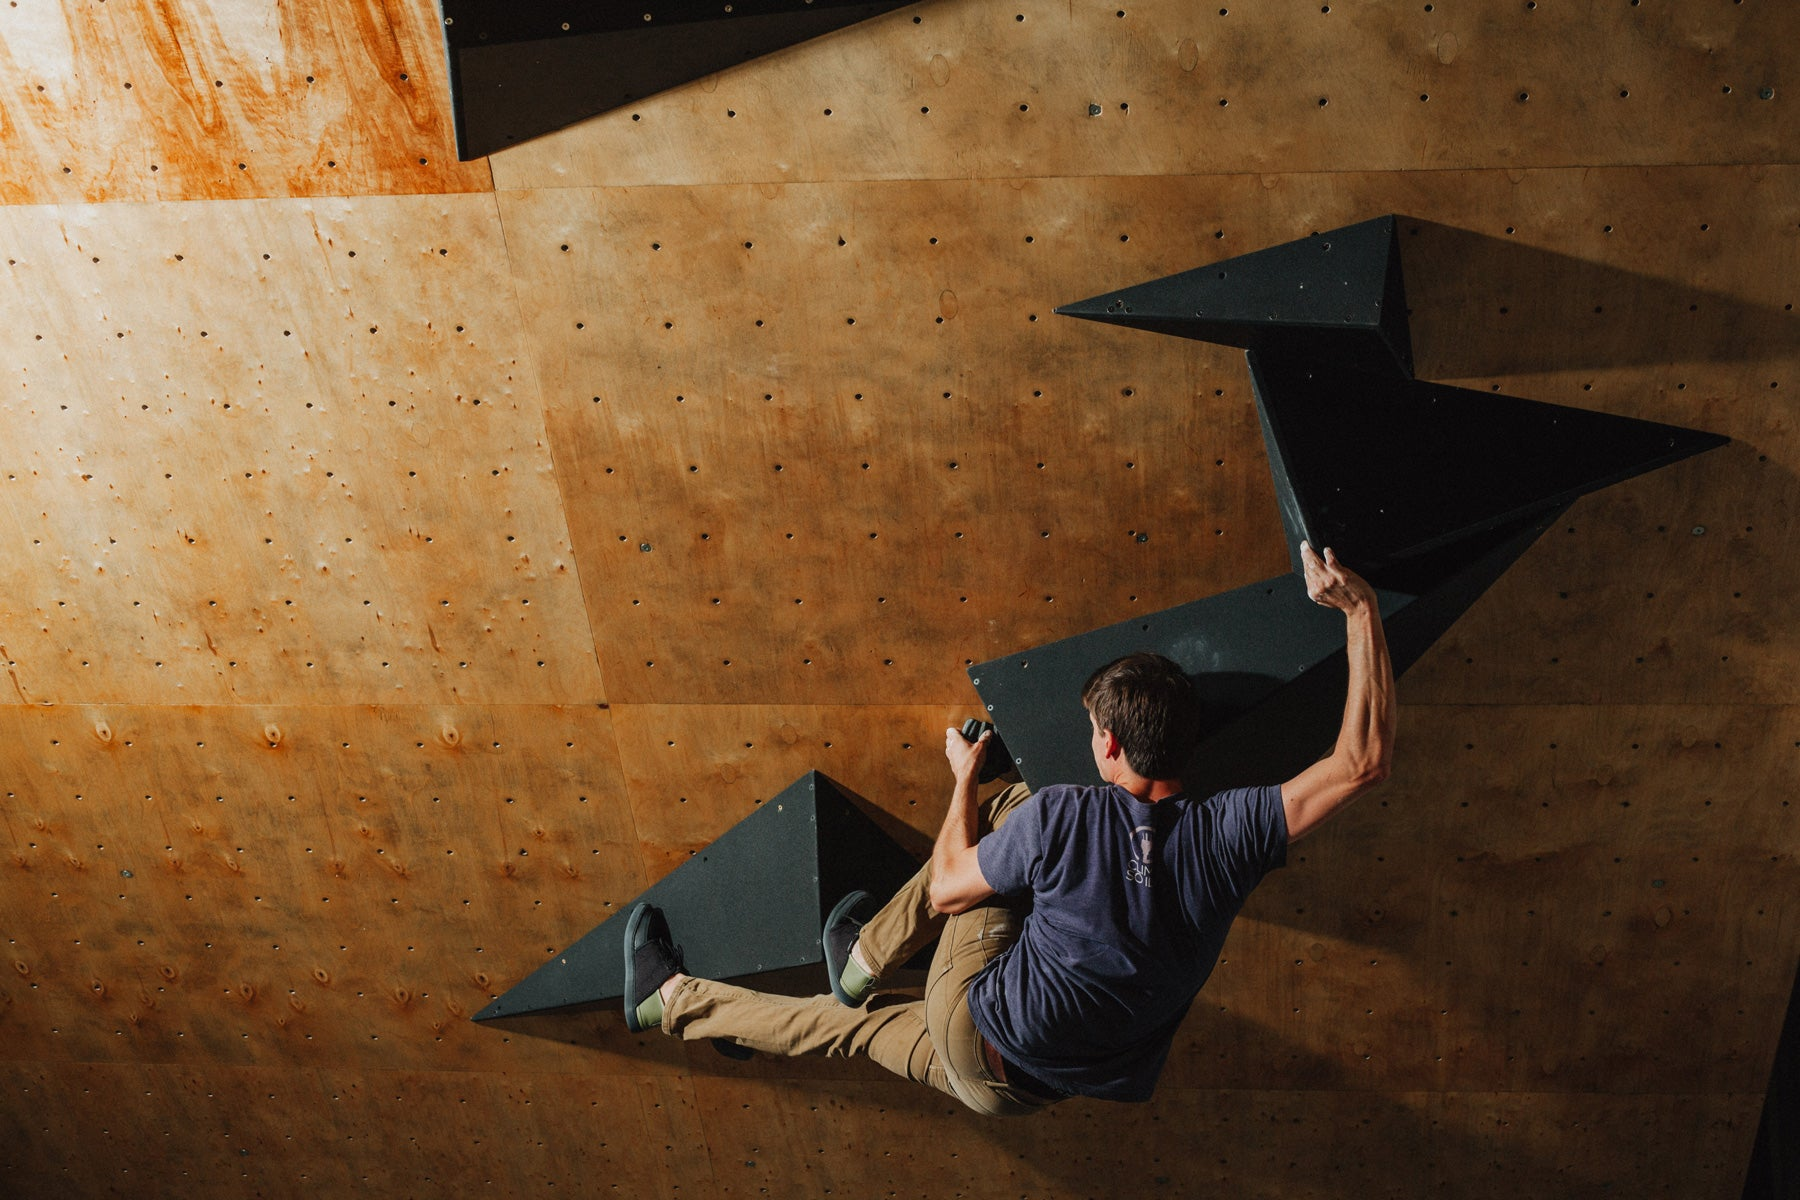 The So iLL flat pack volumes are climbed on during a climbing session.